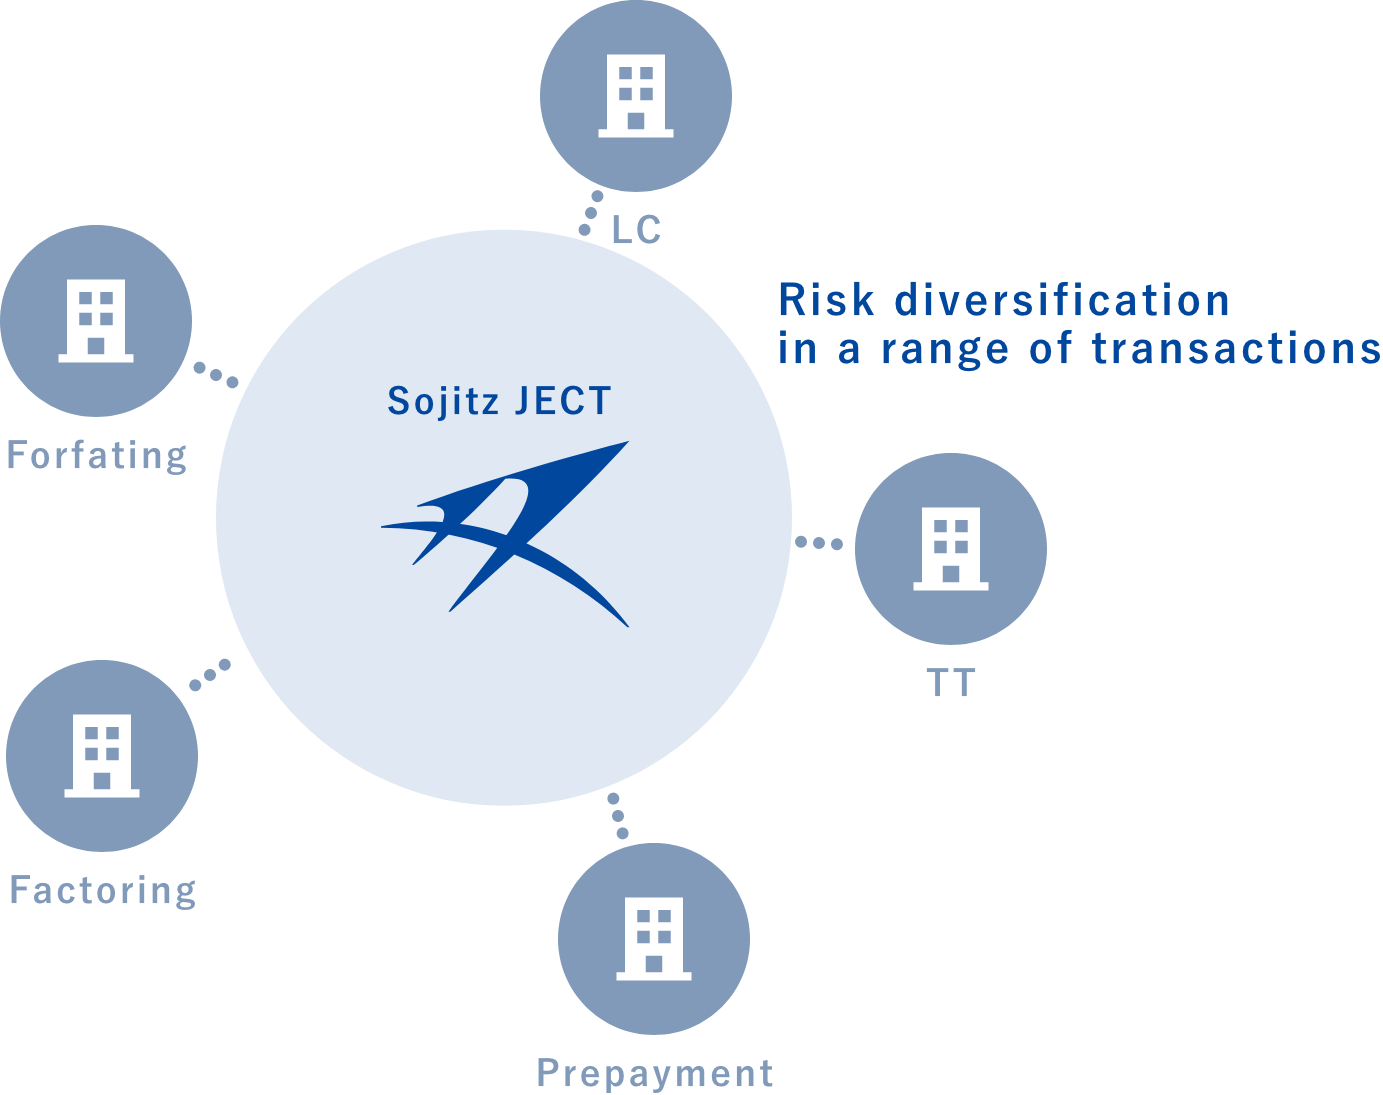 Risk diversification in a range of transactions